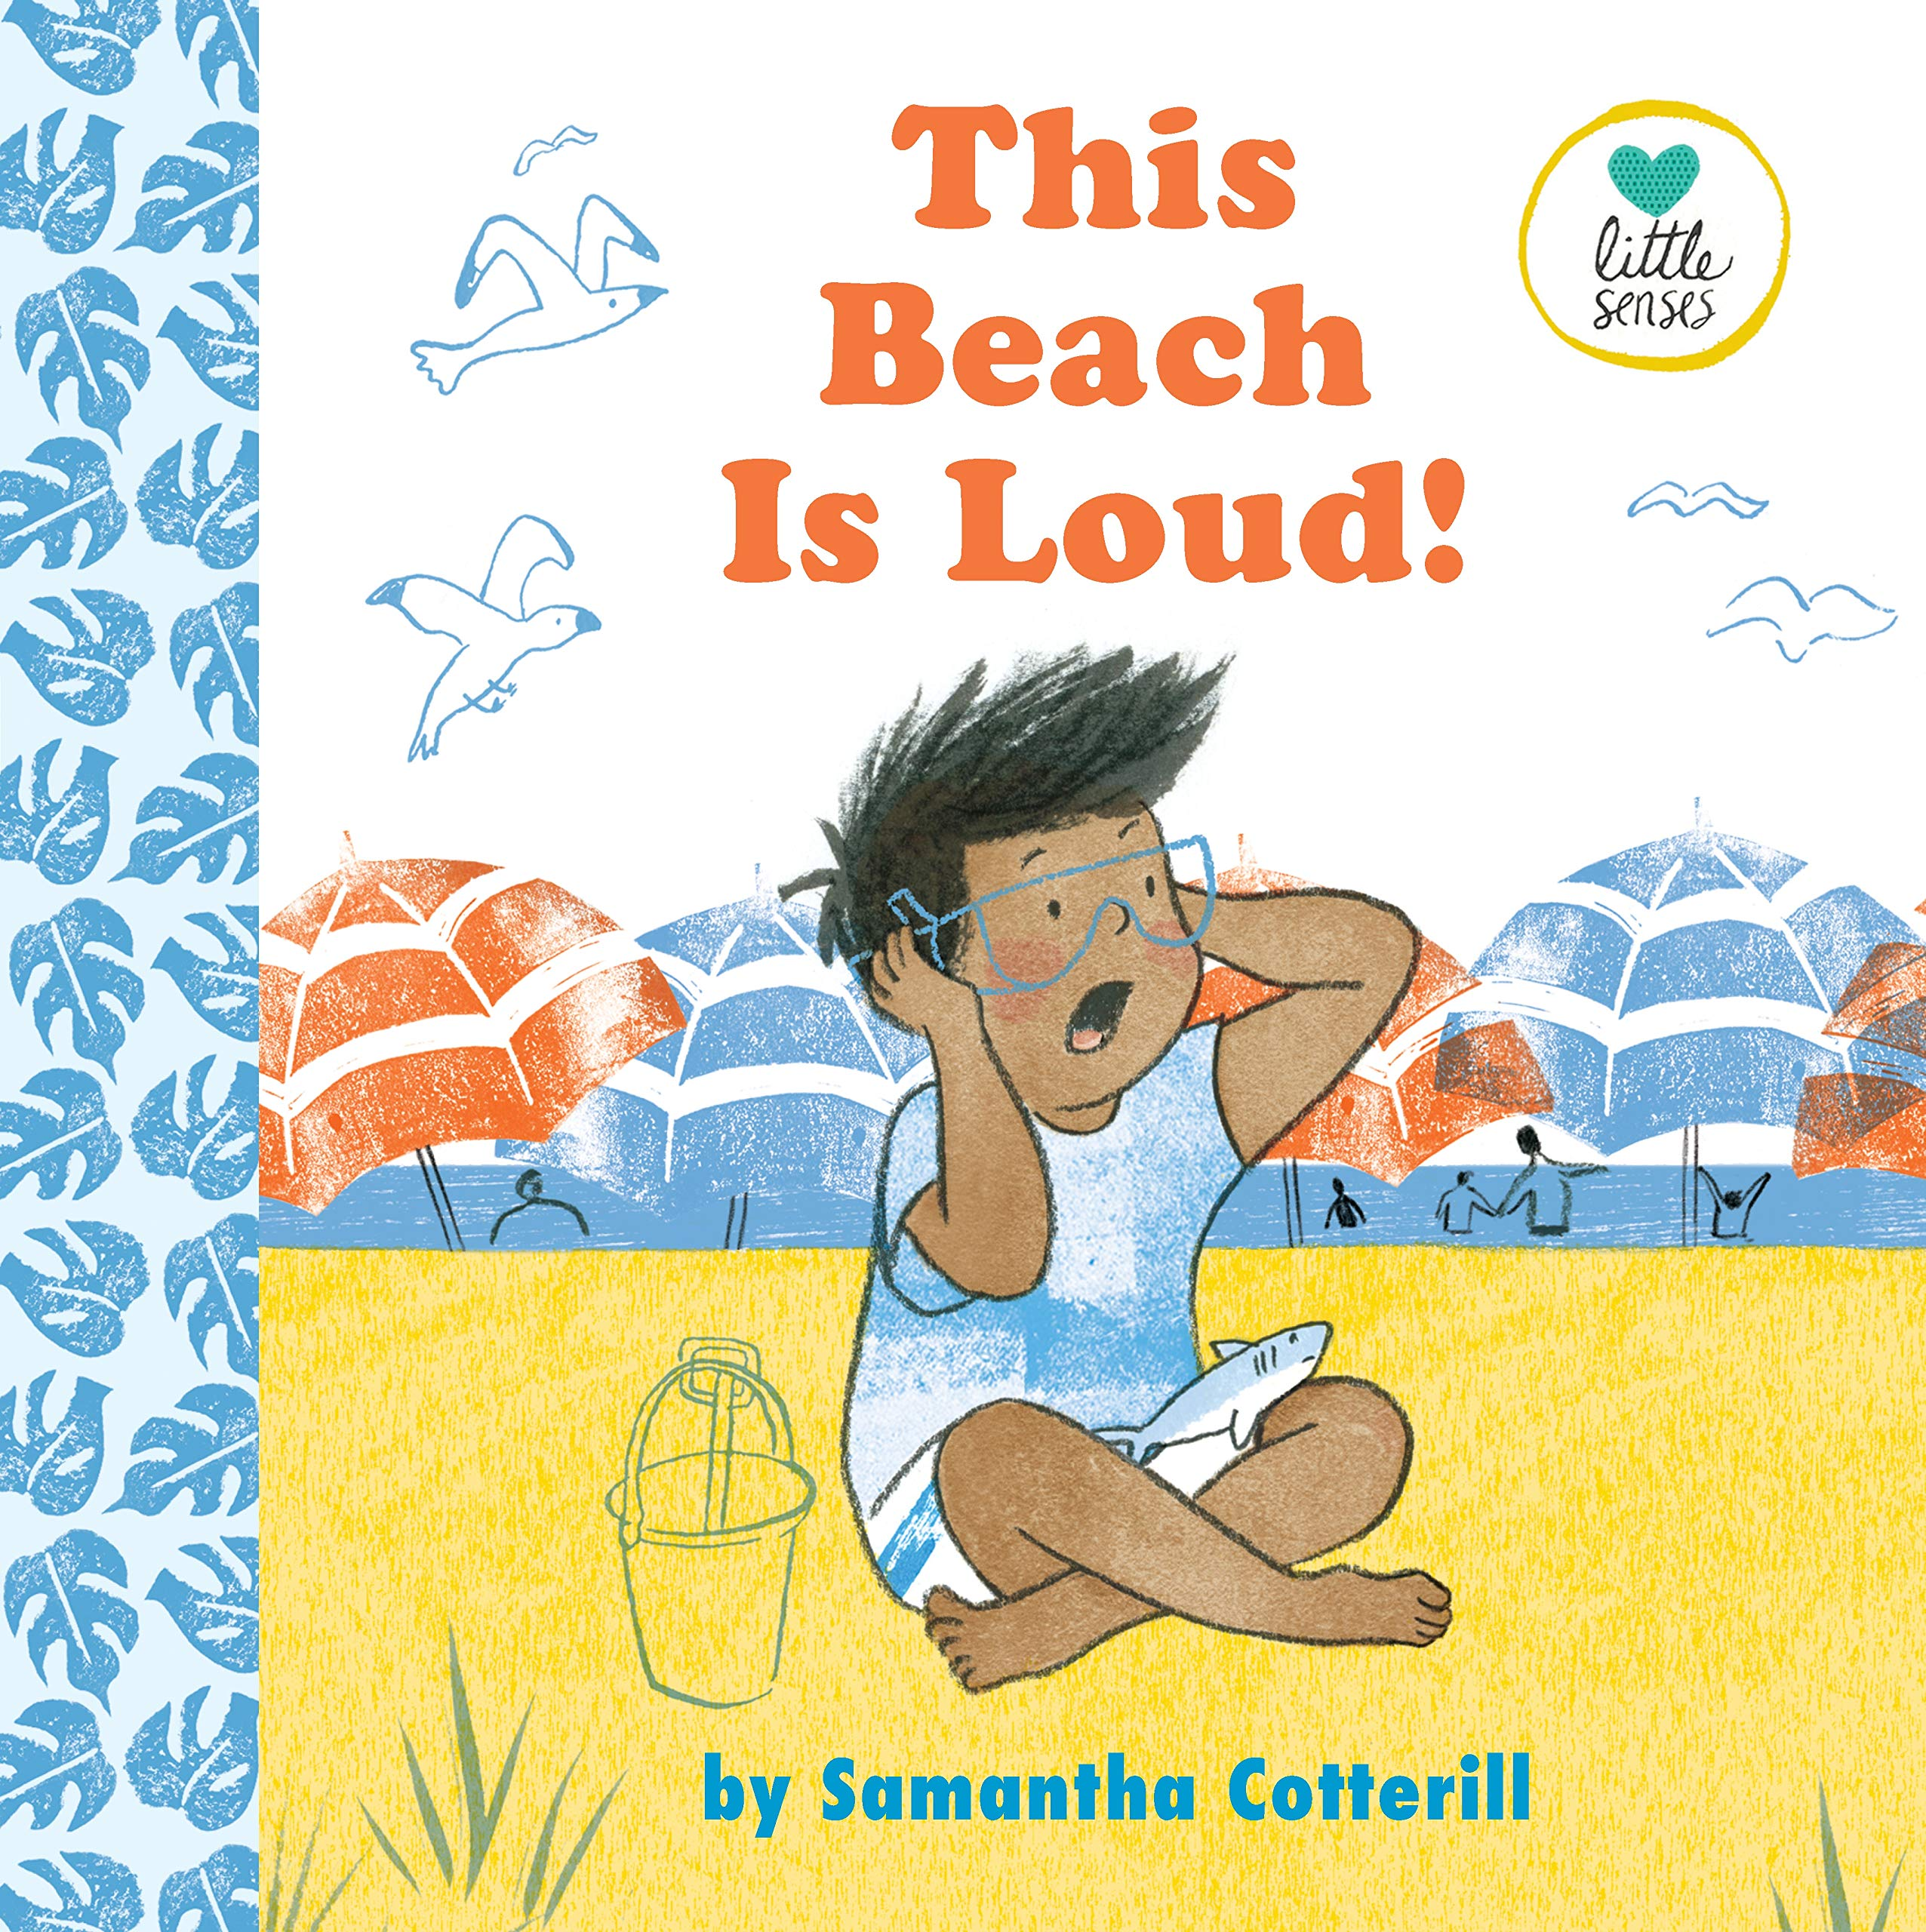 This Beach Is Loud! (Little Senses): Samantha Cotterill.